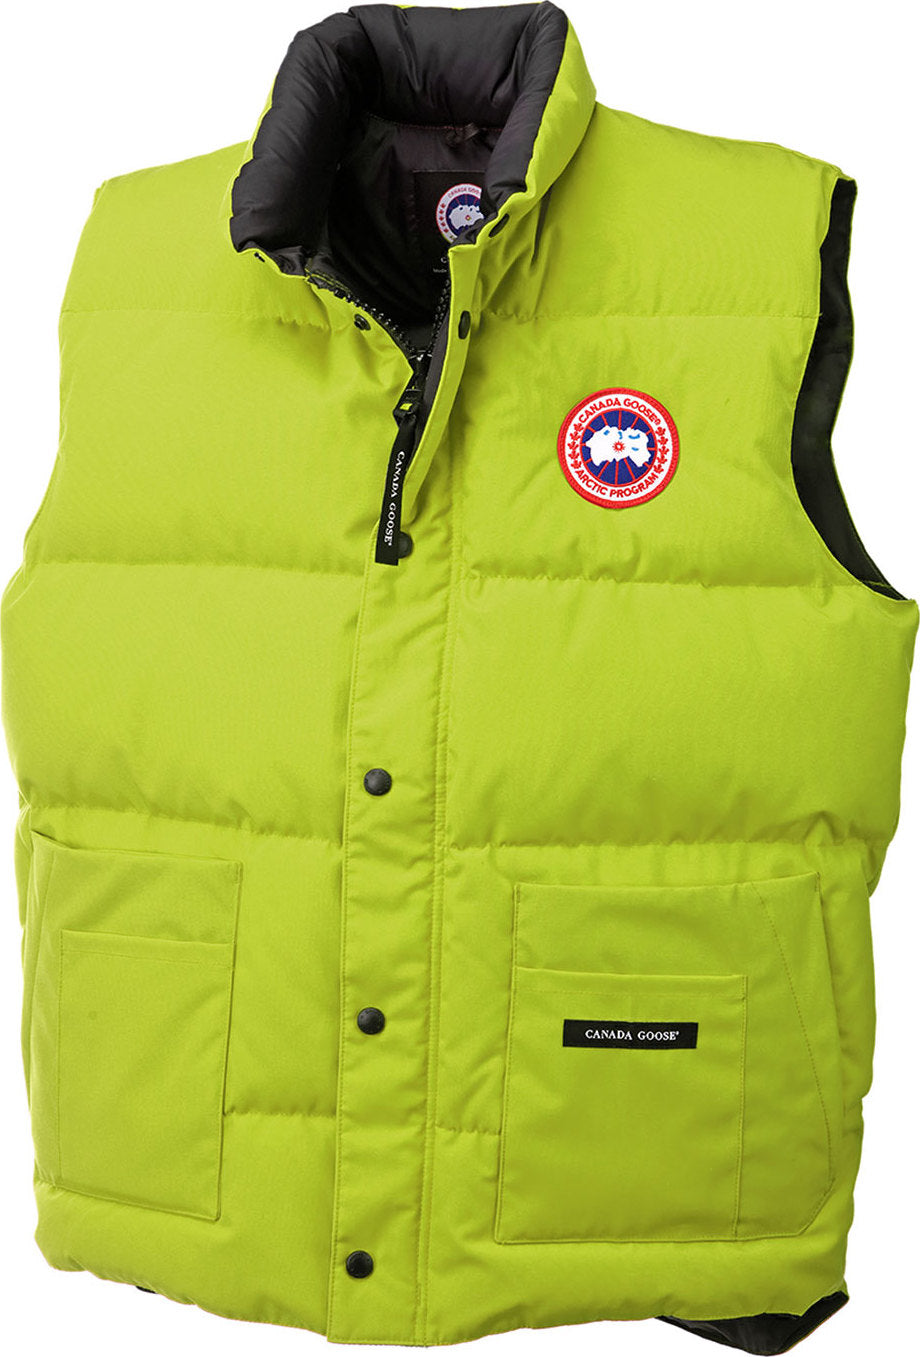 Canada Goose Men s Freestyle Vest Past Season   Altitude Sports 4ed861e8a252